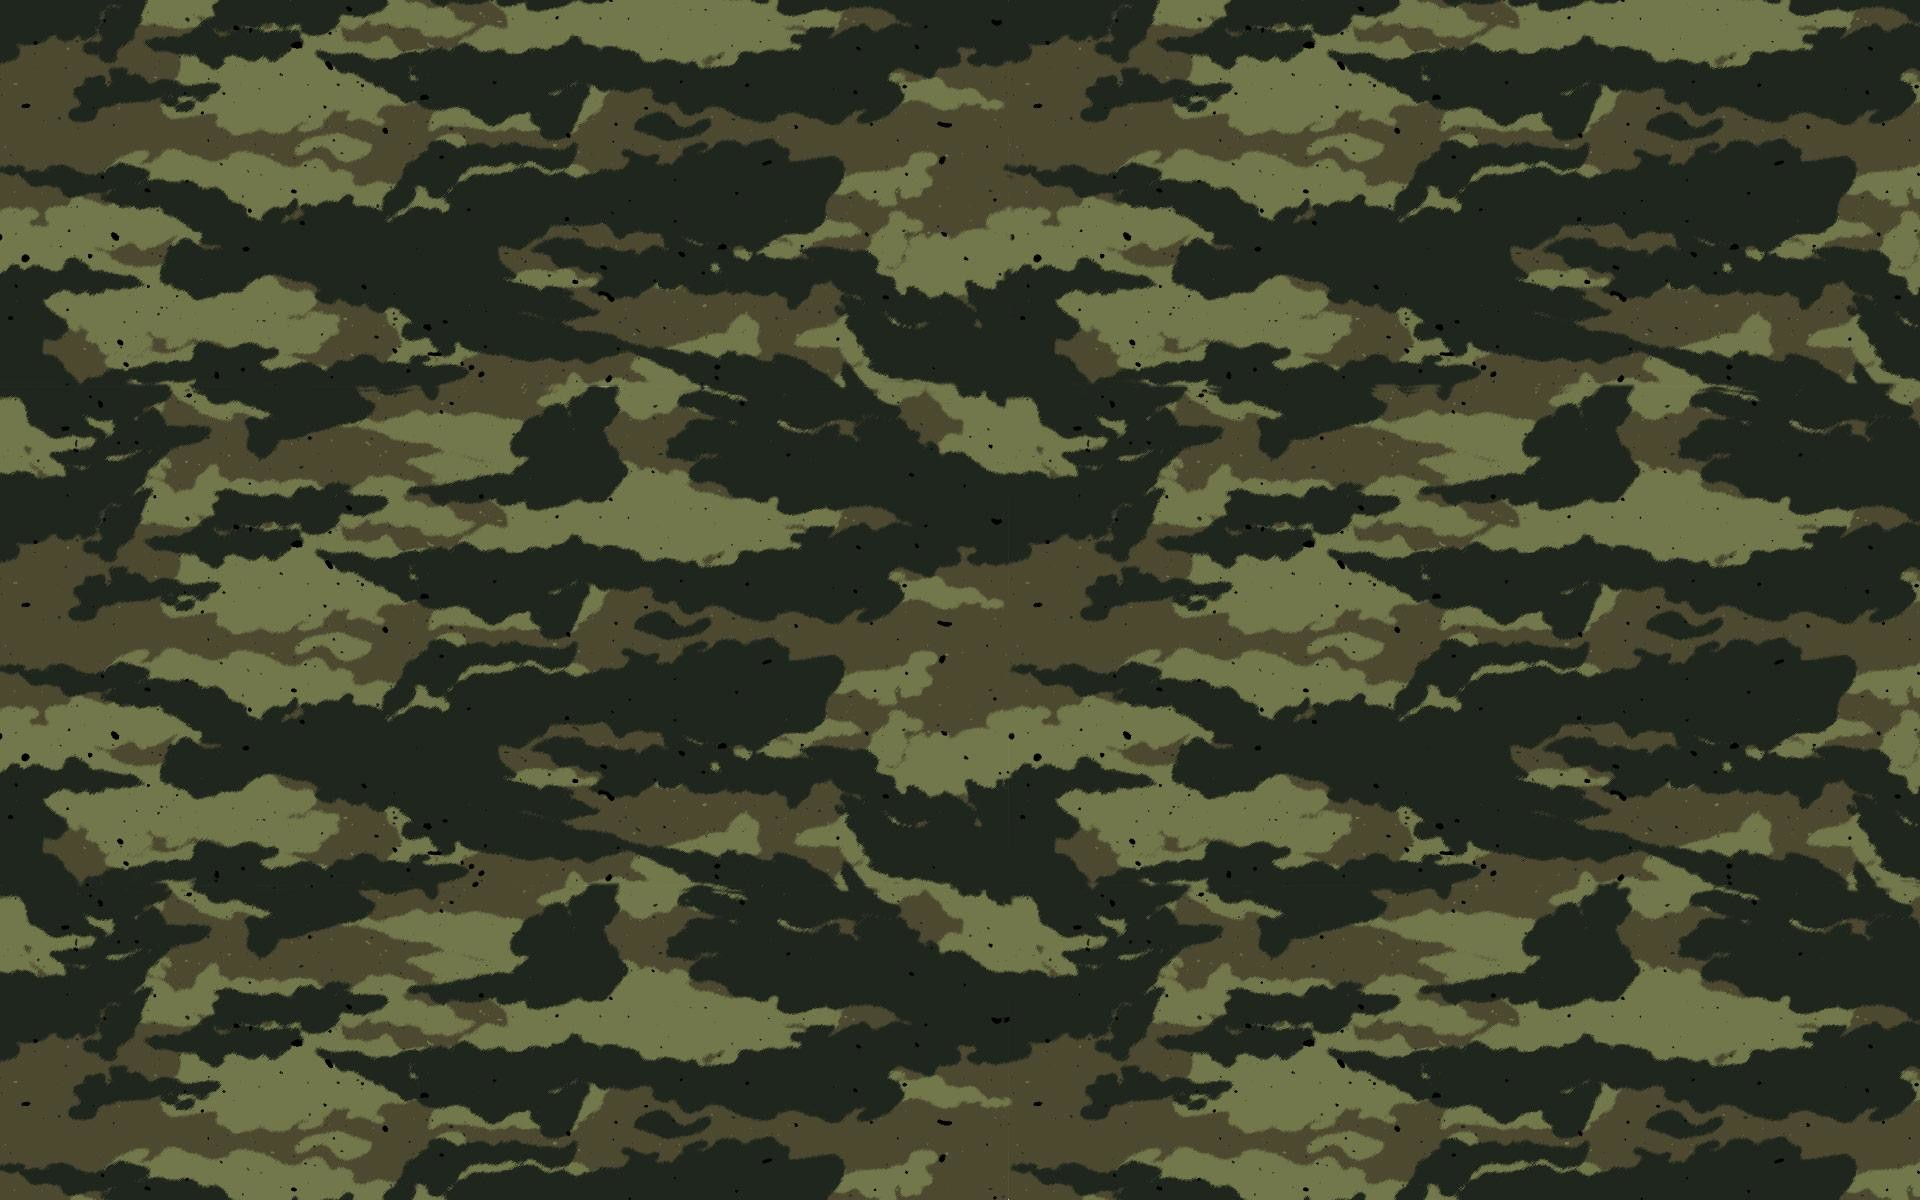 1920x1200 Incipio-Camo-Wallpaper